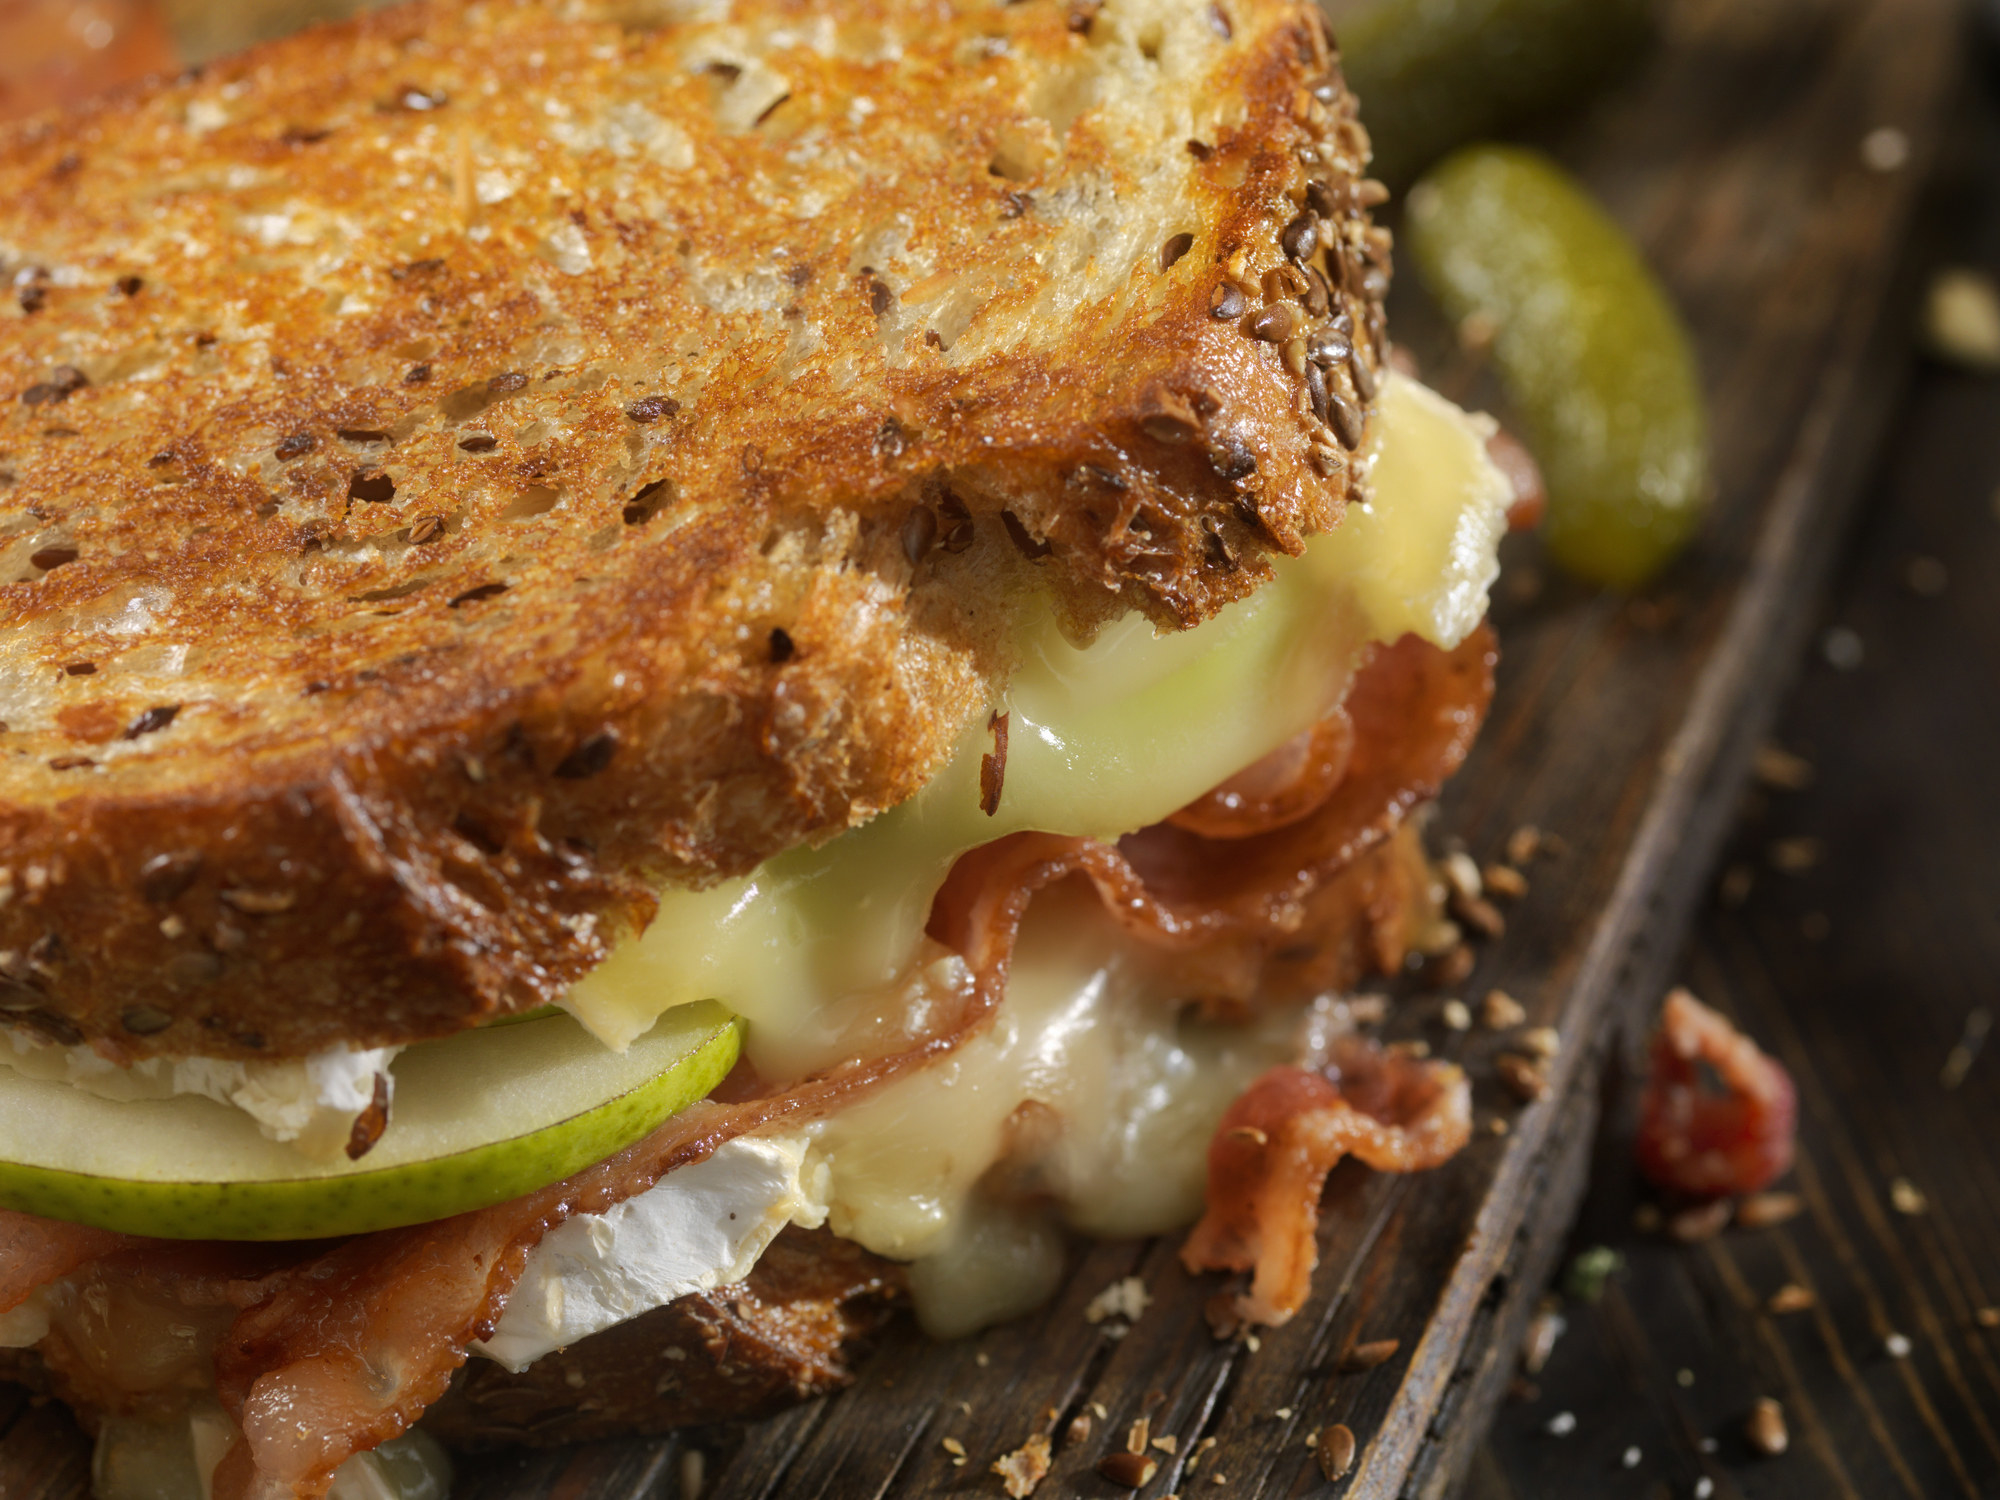 A gooey grilled cheese sandwich with apple and bacon.